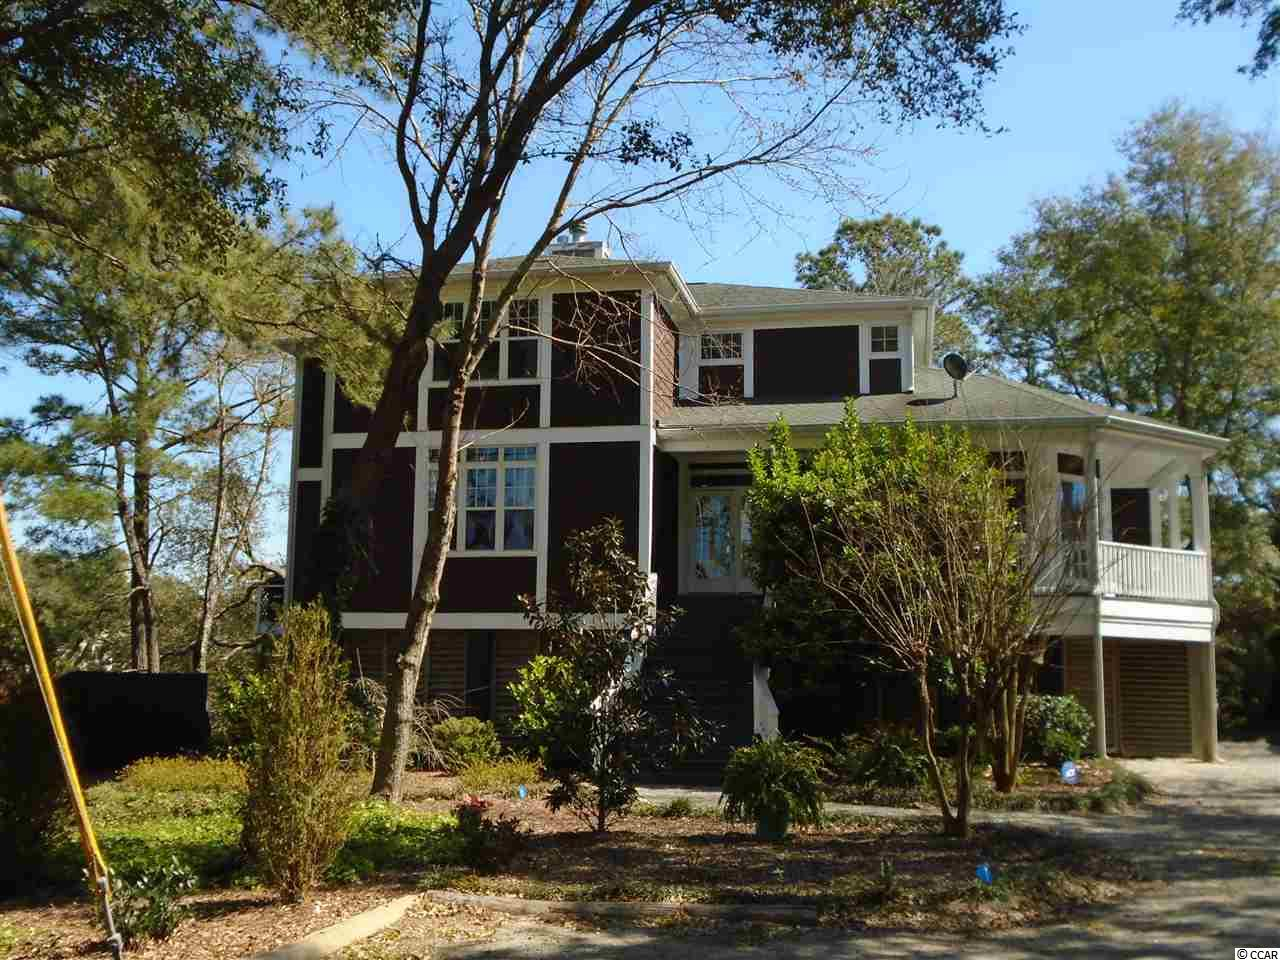 This Pawleys Island hidden marsh retreat is bordered by wetlands and lies beneath a canopy of majestic oaks, maples, pine and magnolia trees.  Sip ice tea on the screened porch or relax in a rocking chair as you take in the countless spirits of the birds, such as the blue herons, egrets, hummingbirds, cardinals and bluebirds just to name a few.  In keeping with its natural beauty the property has been artfully maintained by the green thumbs of a master gardener.  In the spring we welcome the blossoms of the weeping cherry, the hydrangeas, the magnolias, and the kaleidoscopes.  As the gardens and marshes blanket the property, no grass needs tending.  This original marsh arm stands alone, outside the confines of a neighborhood, while close enough to lend a cup of sugar.  For shell seekers, the beach is less than a mile away.